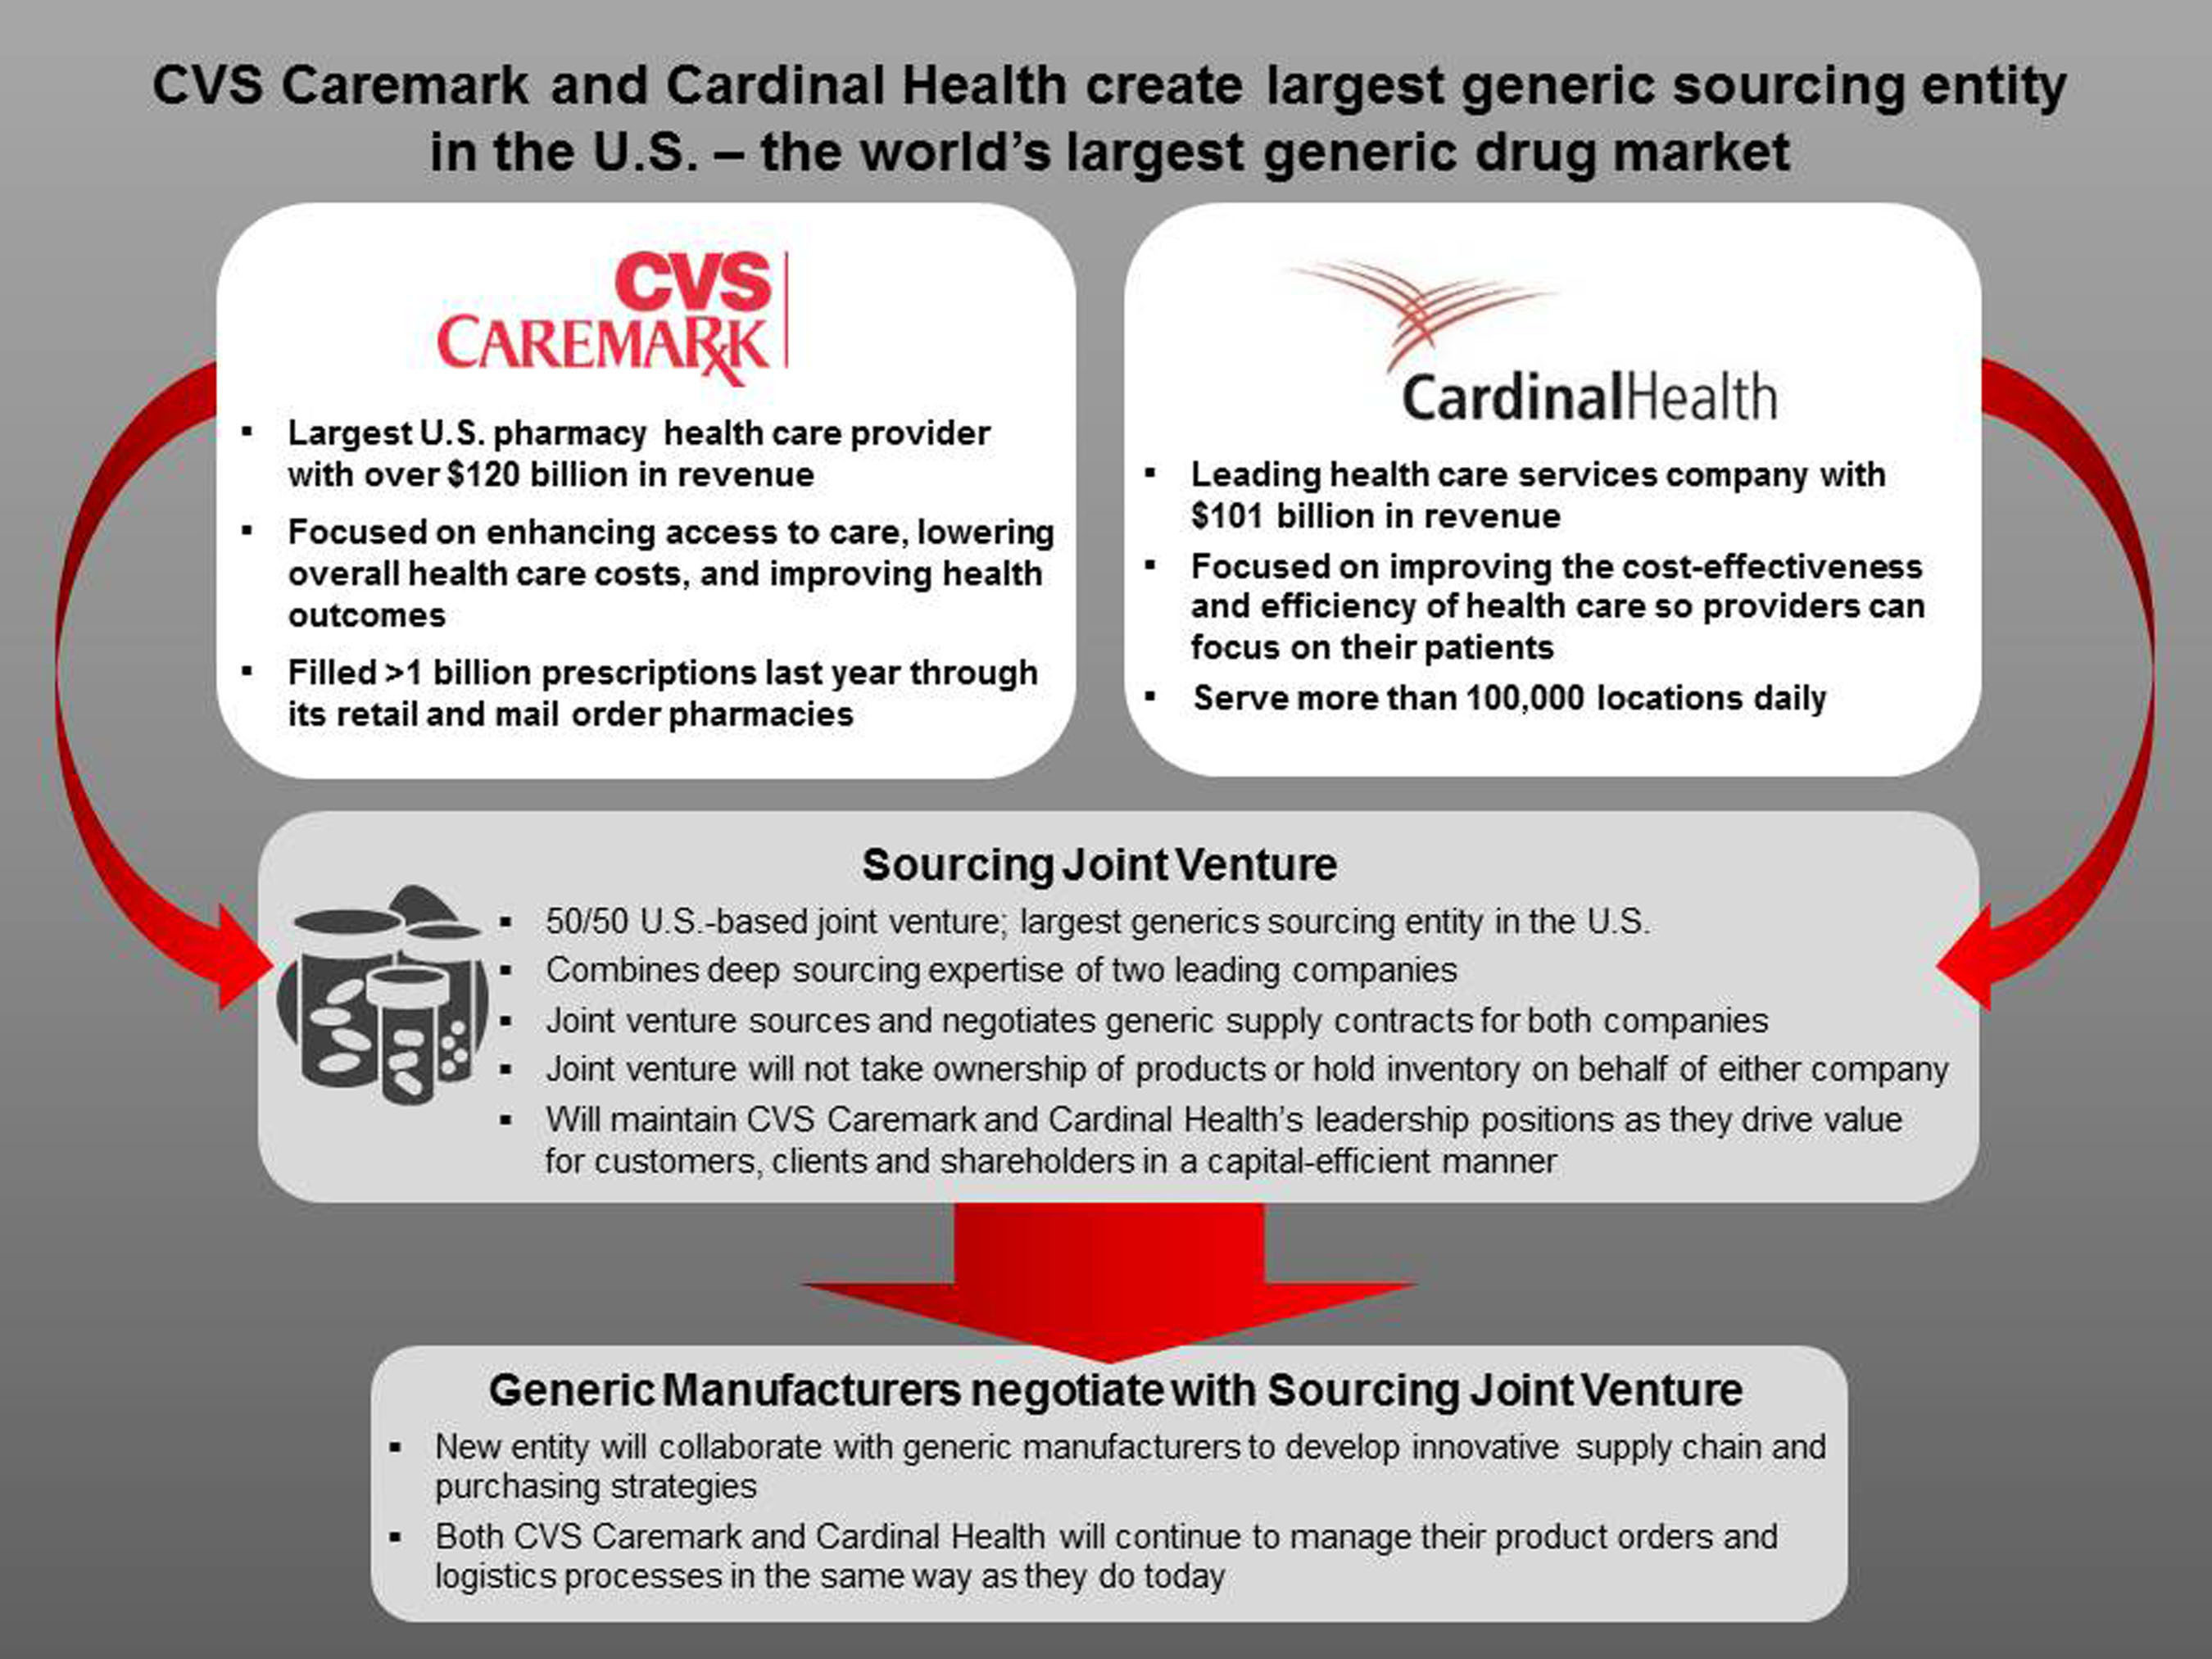 CVS Caremark And Cardinal Health Announce Creation Of Largest Generic Sourcing Entity In U.S.  (PRNewsFoto/CVS Caremark)